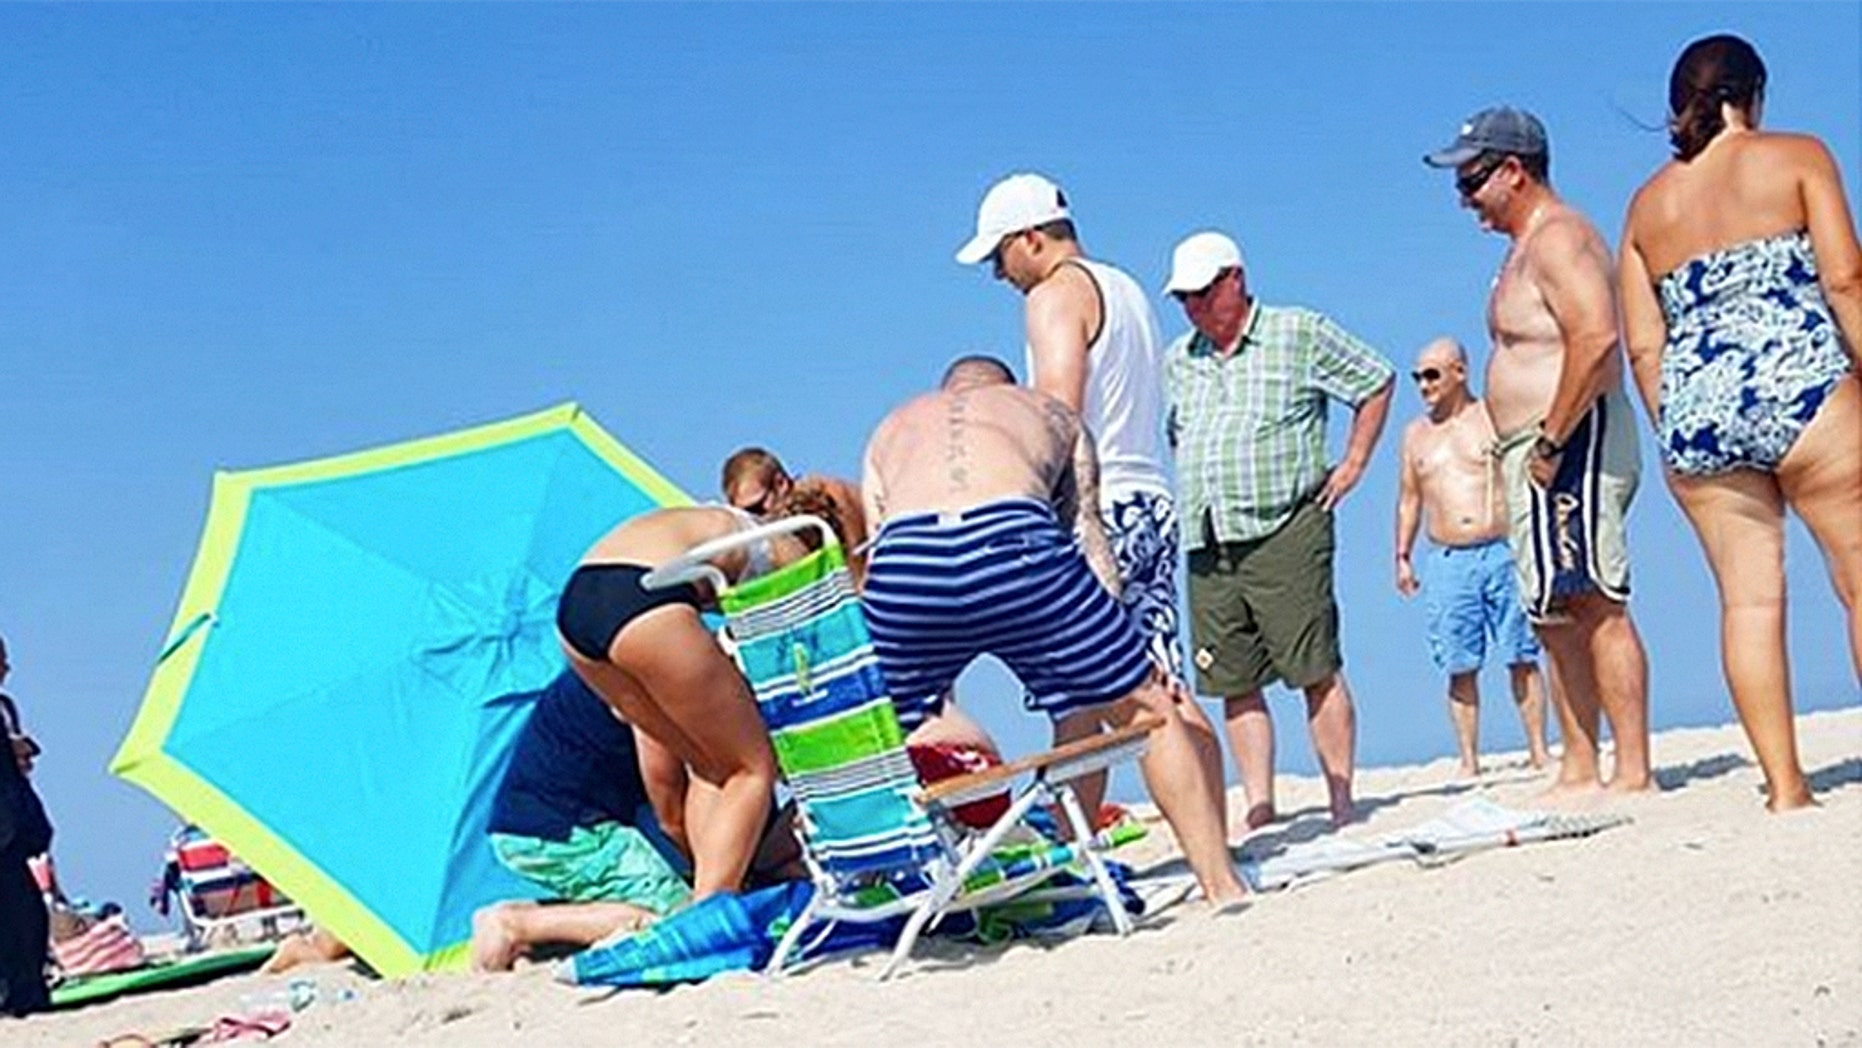 A woman was seriously injured when she was impaled by a beach umbrella on the Jersey Shore on Monday, officials said.